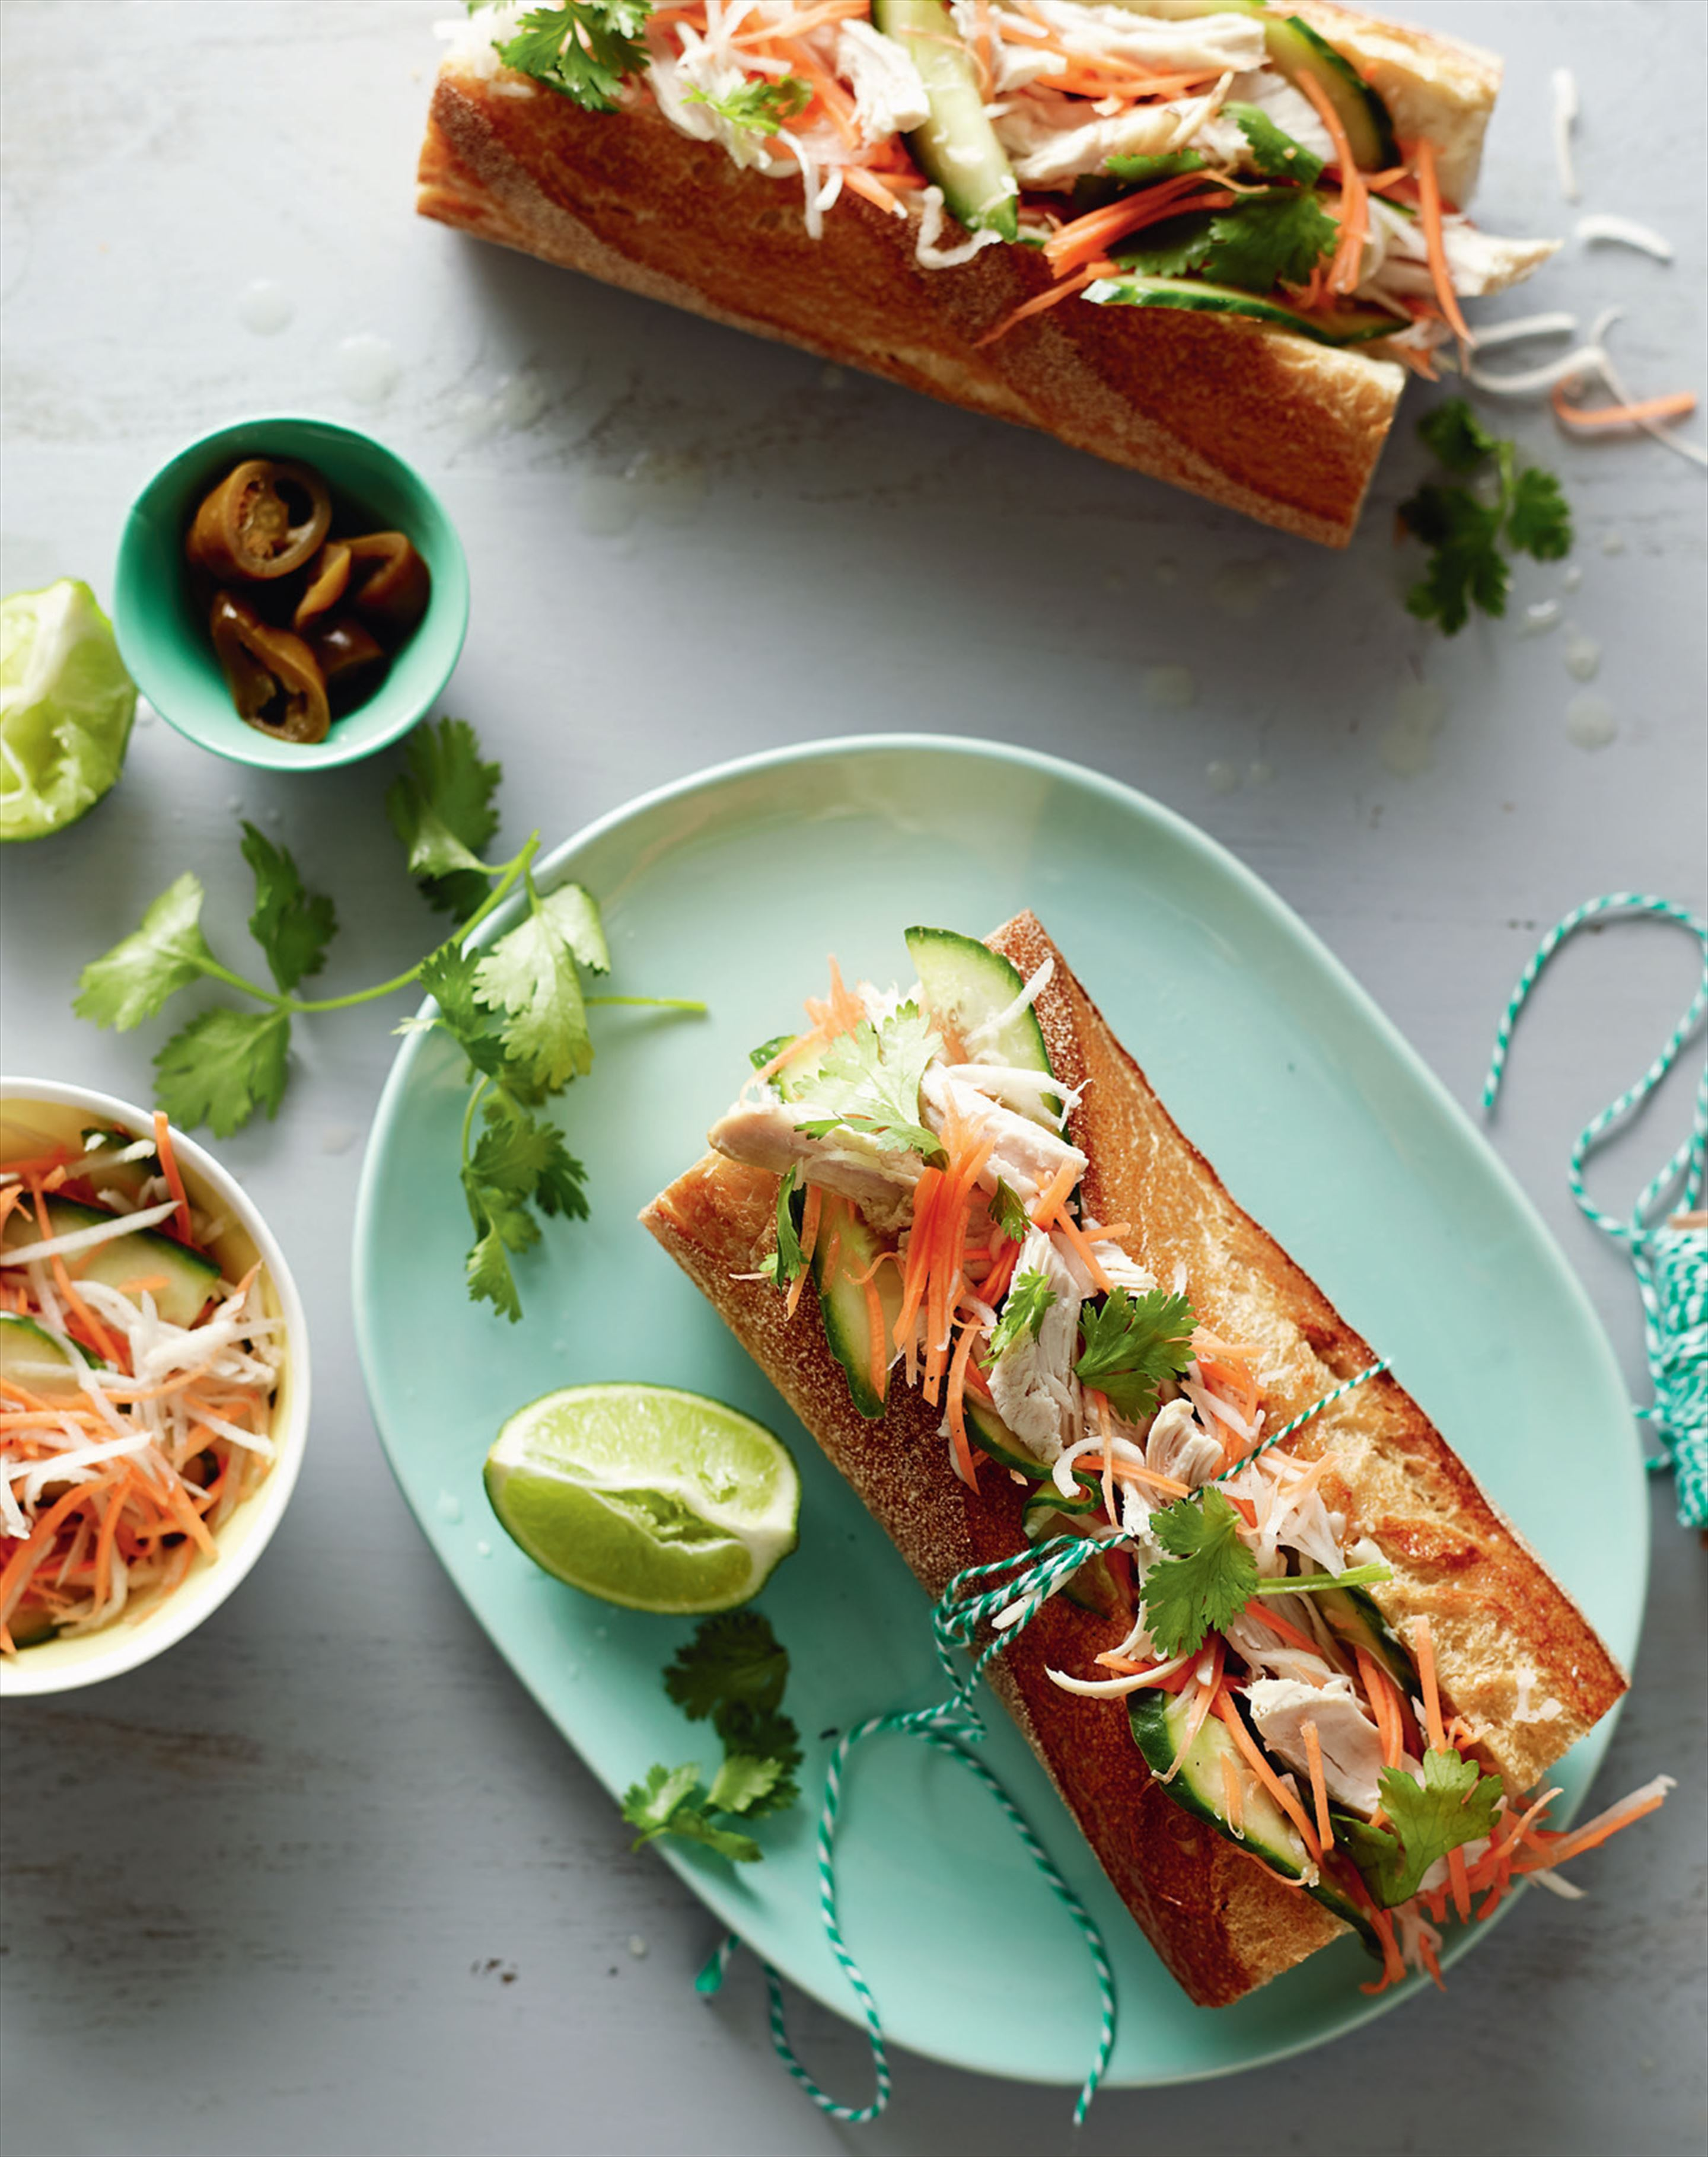 Barbecue chicken banh mi